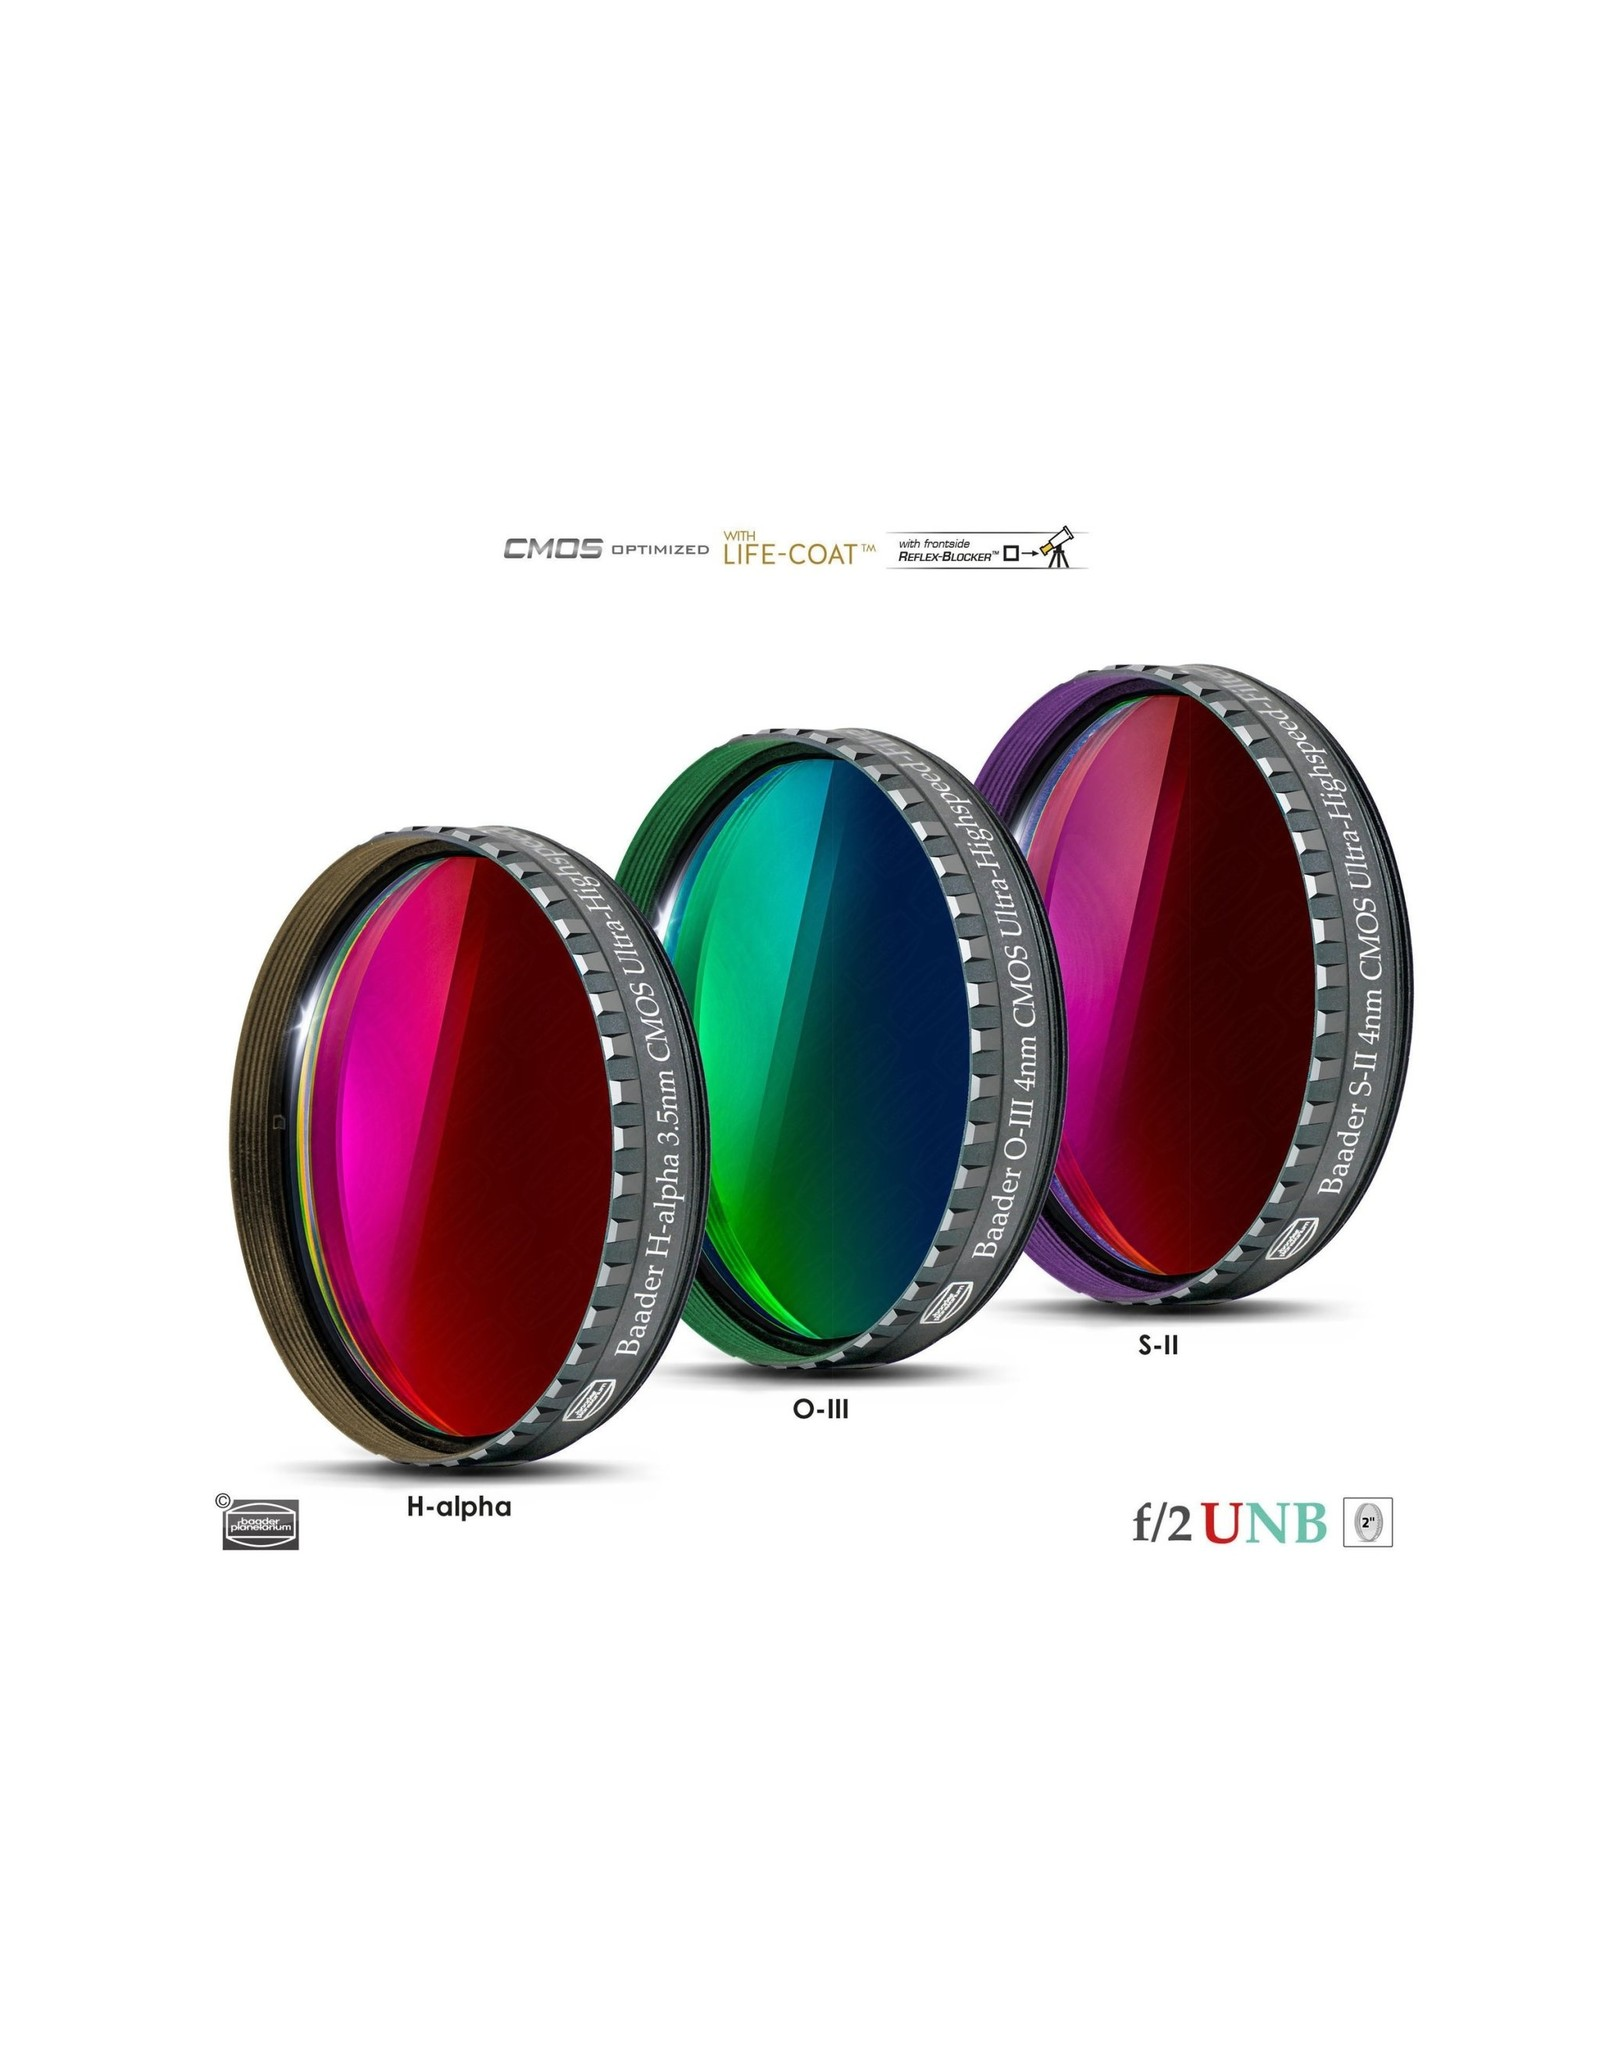 Baader Planetarium Baader 4nm f/2 Ultra-Highspeed Oxygen-III Filters – CMOS-optimized (Specify Size)